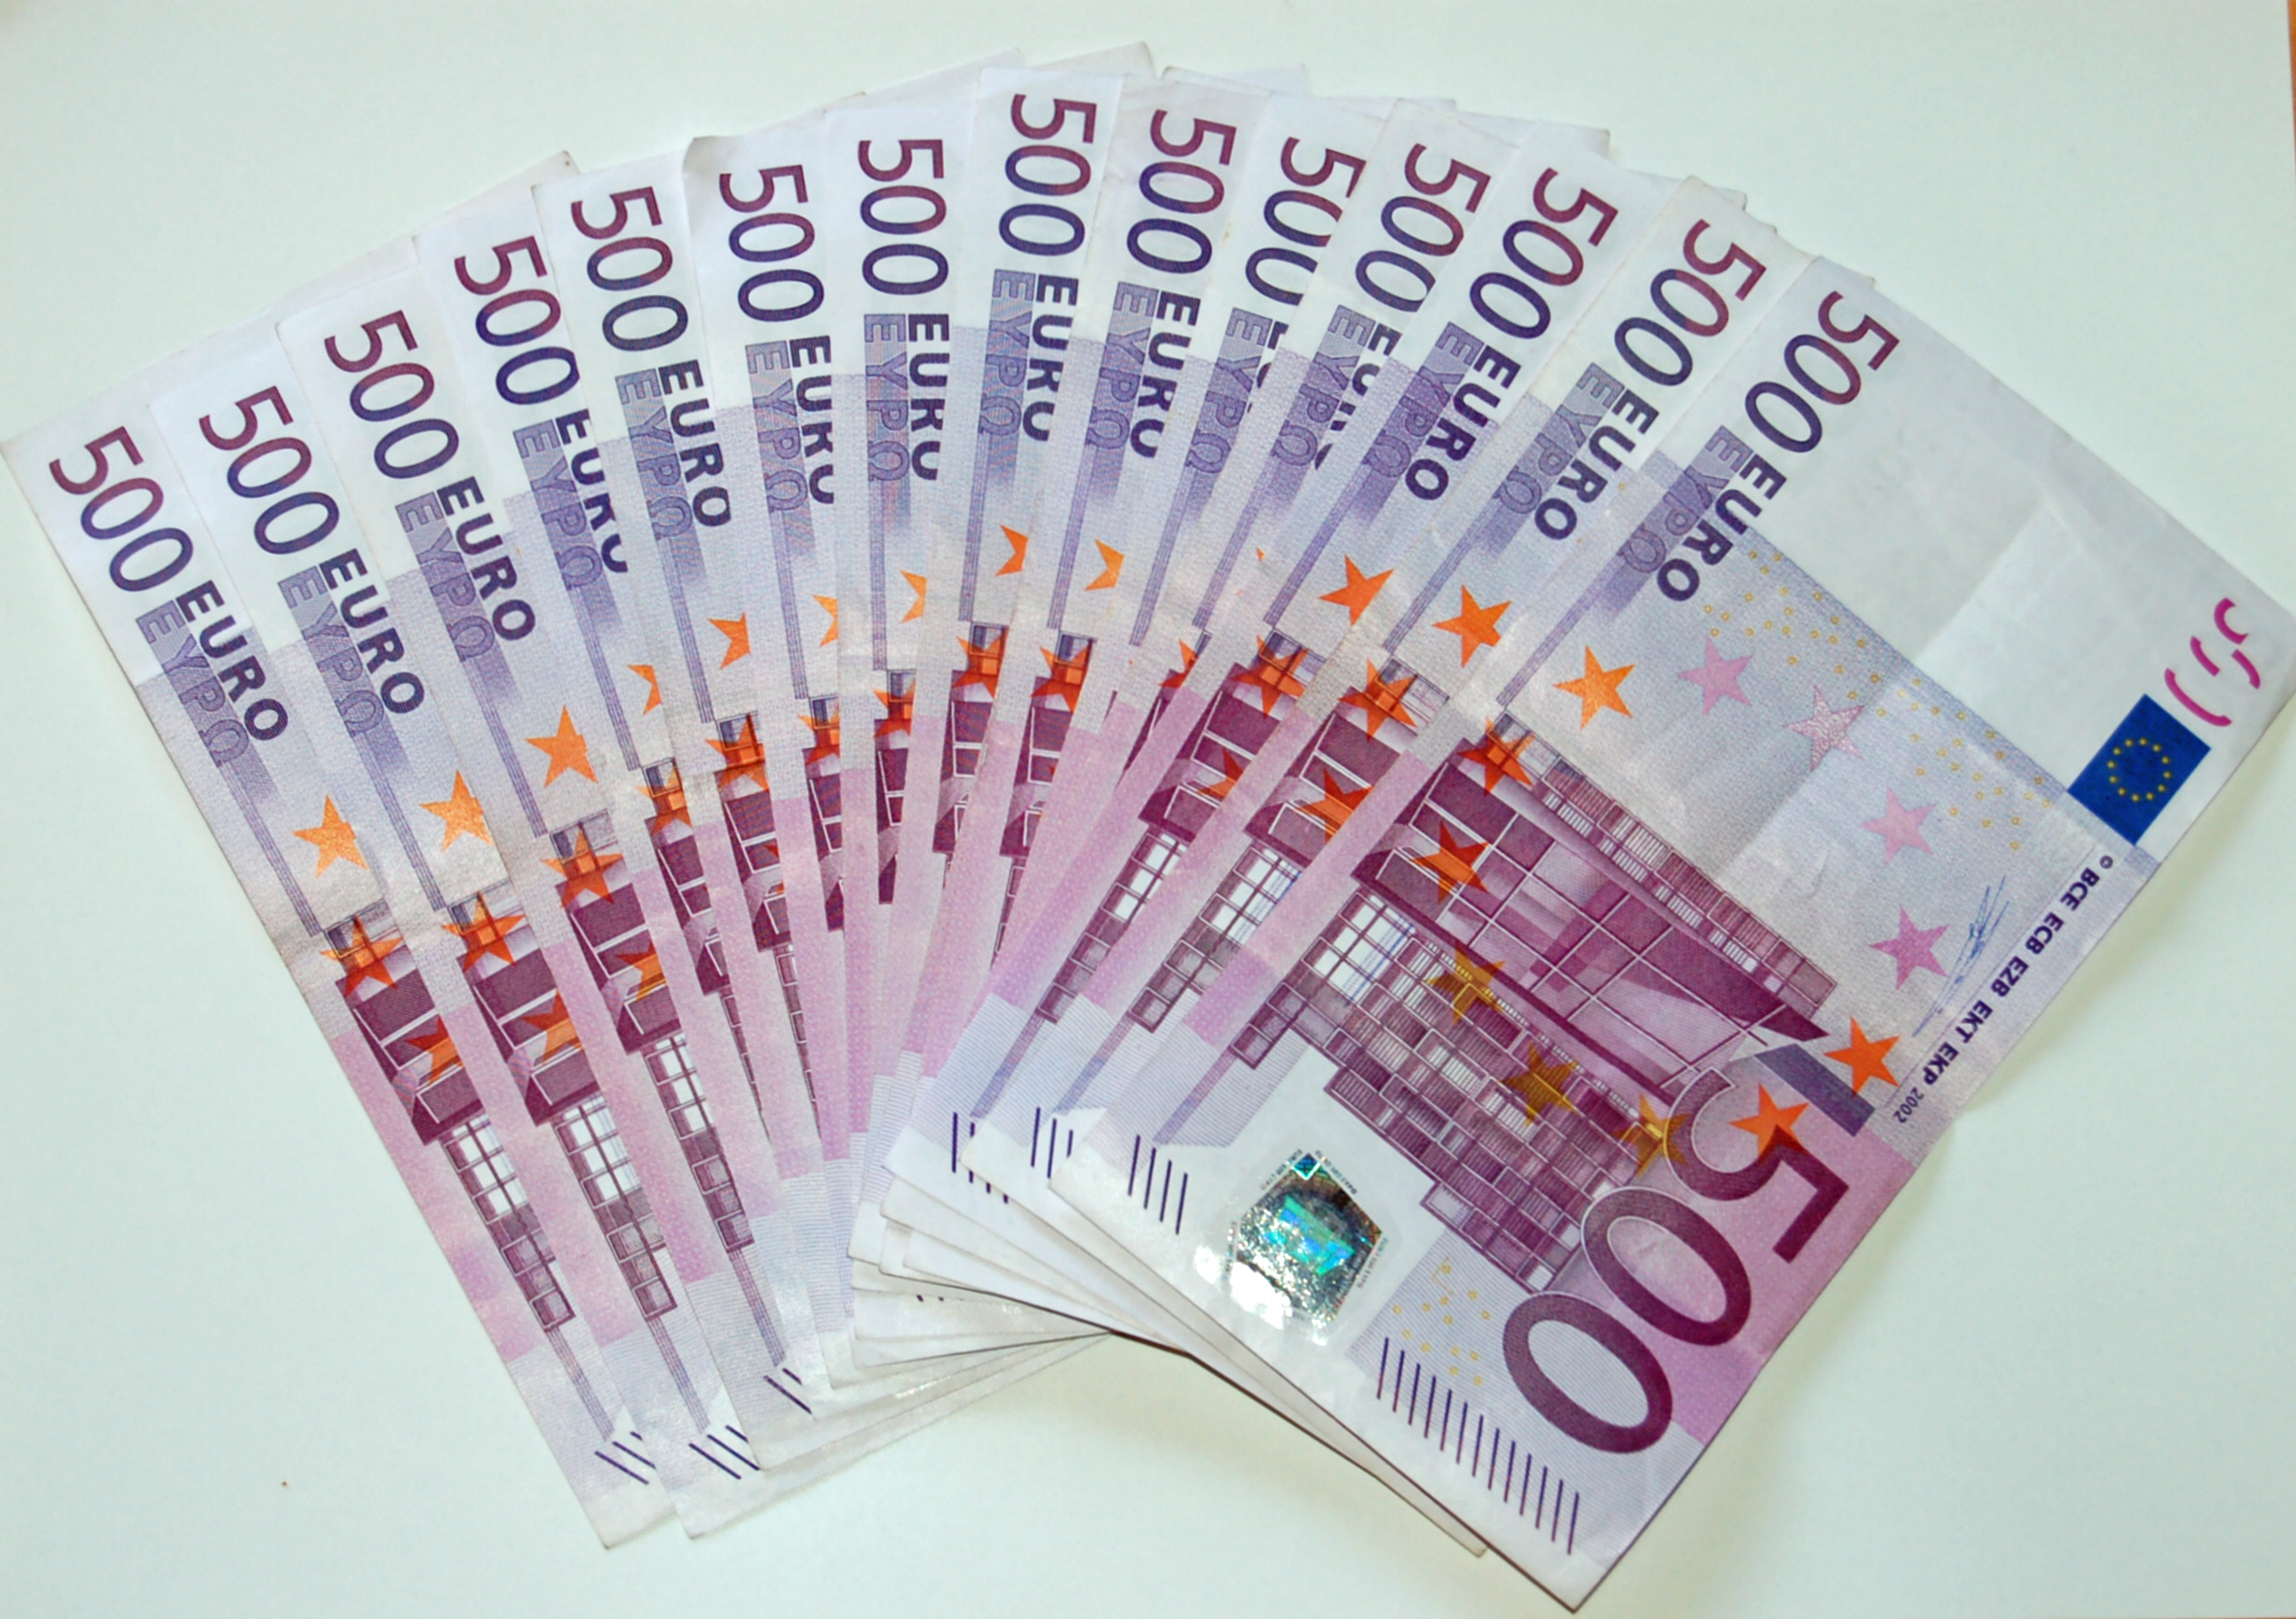 ユーロDescription 500 Euro Banknoten.jpg